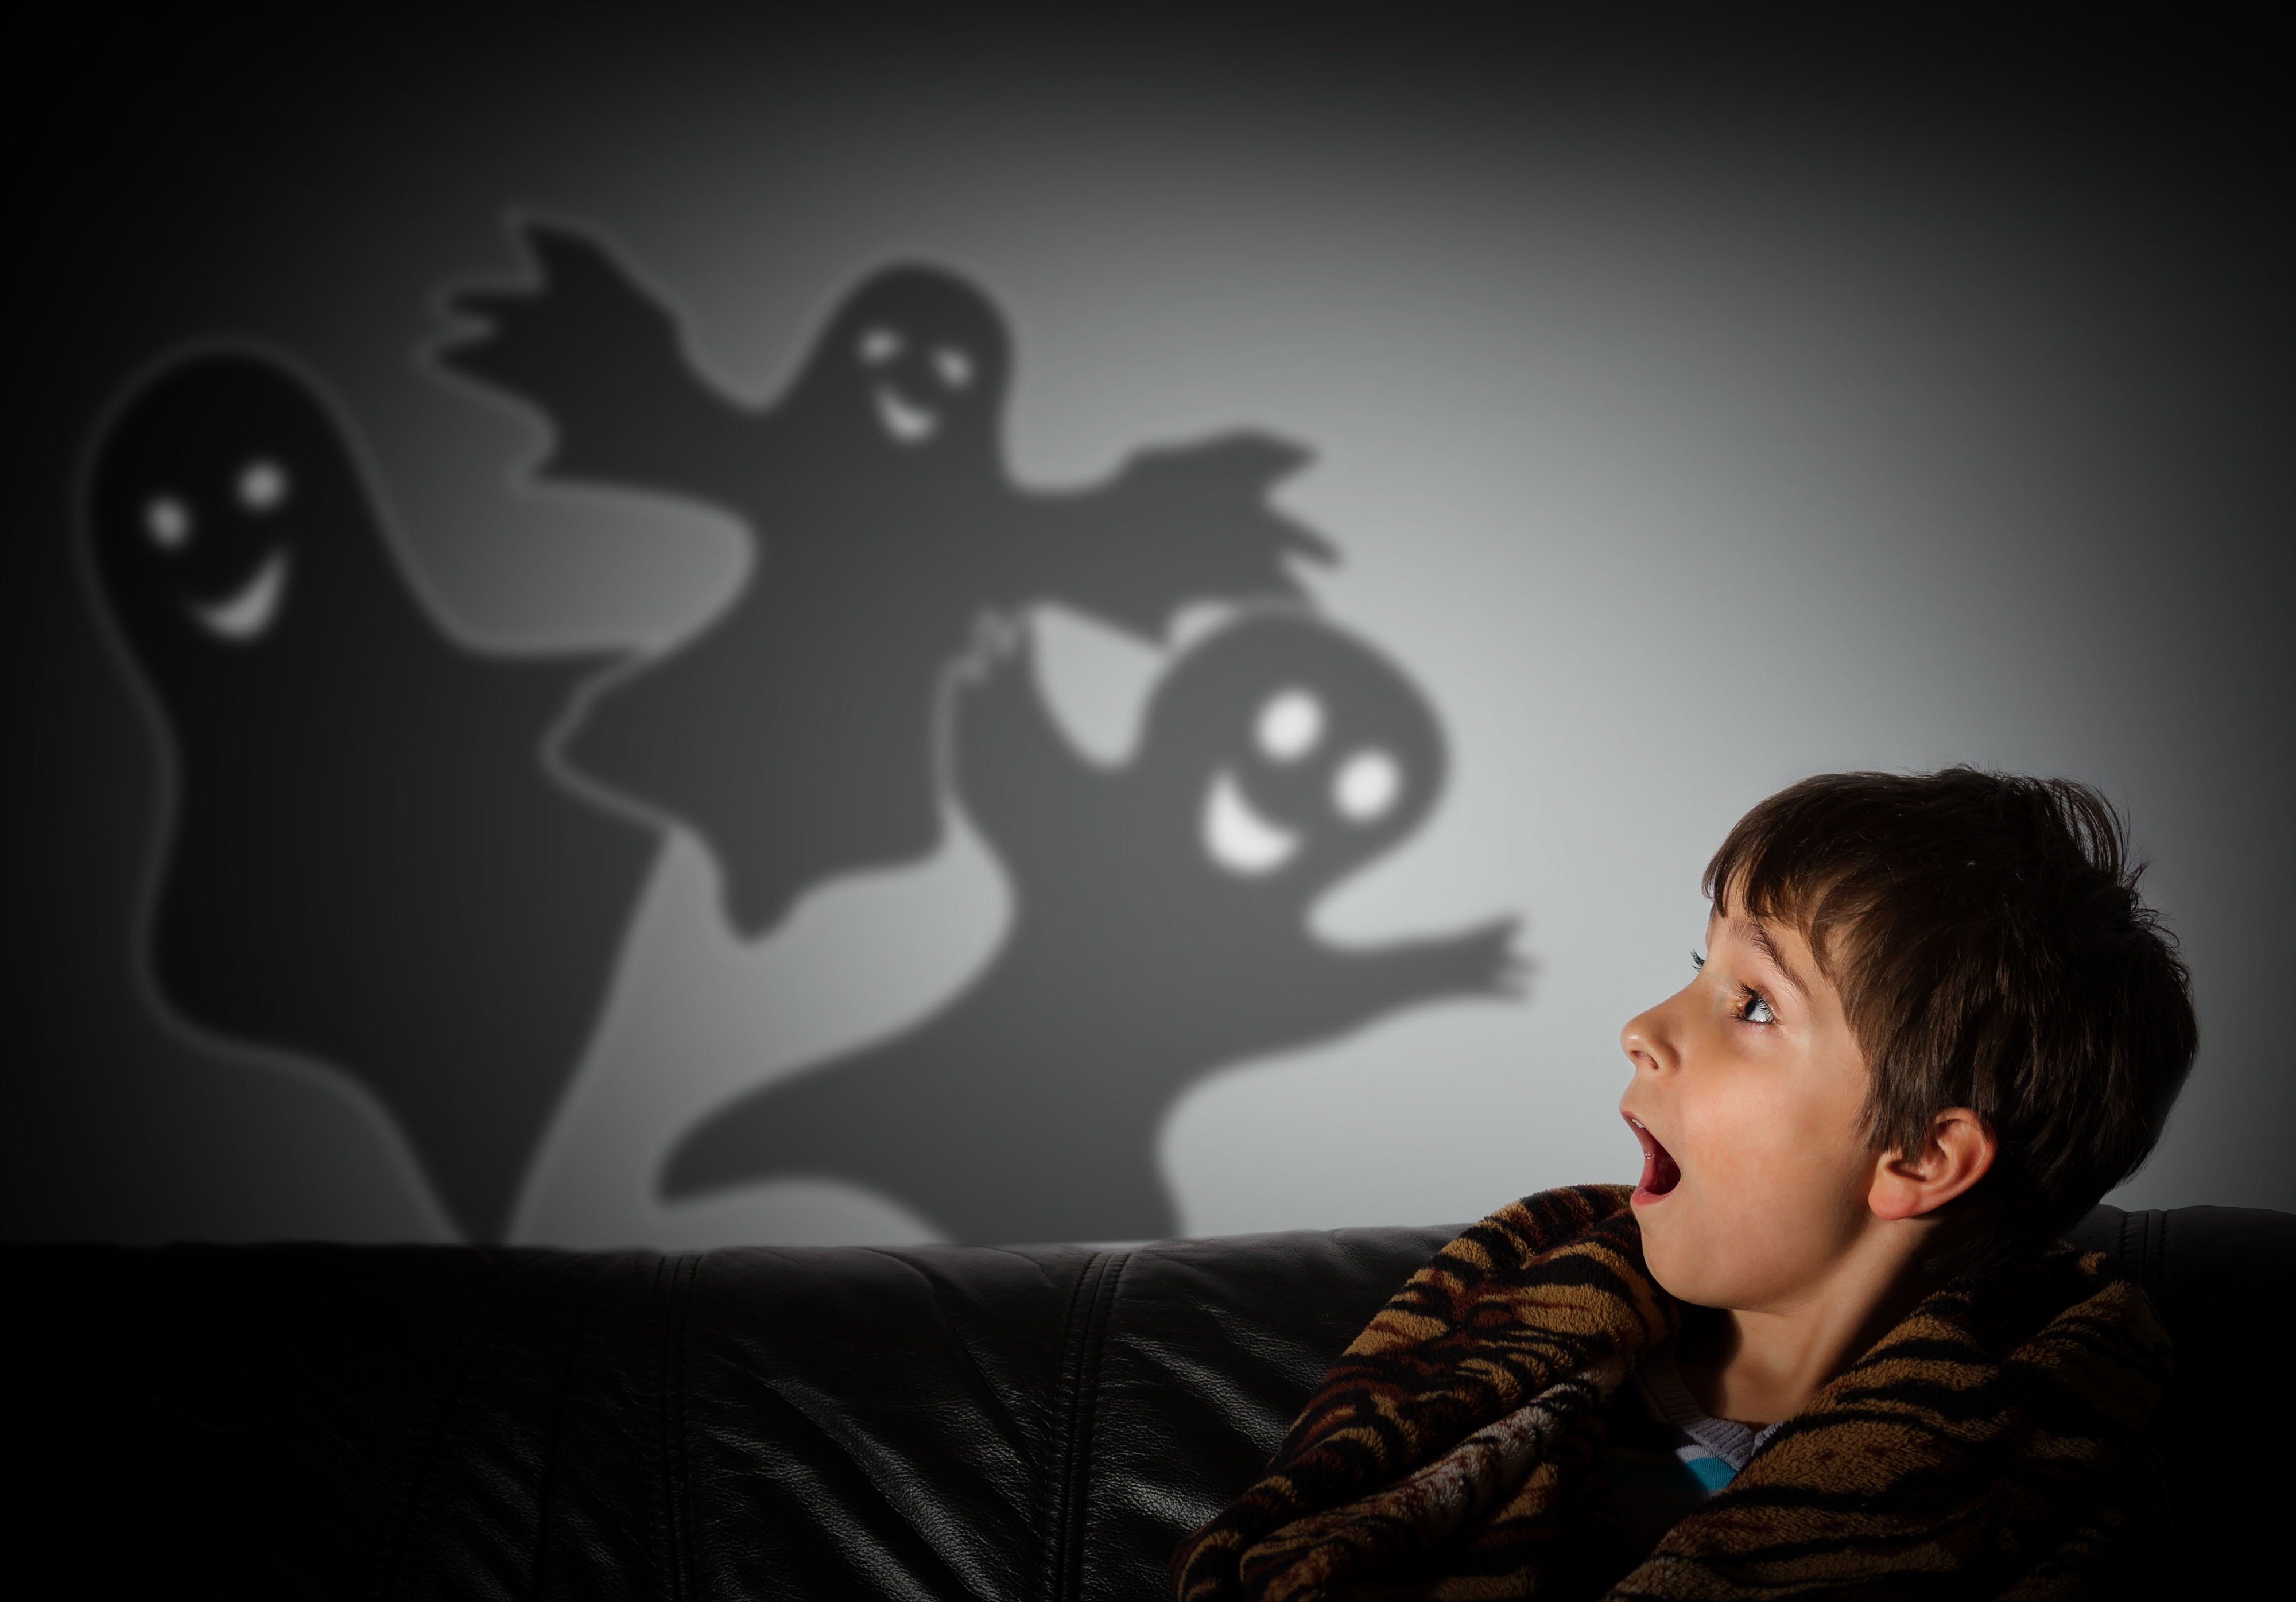 GHOST STORIES GUARANTEED TO SCARE!